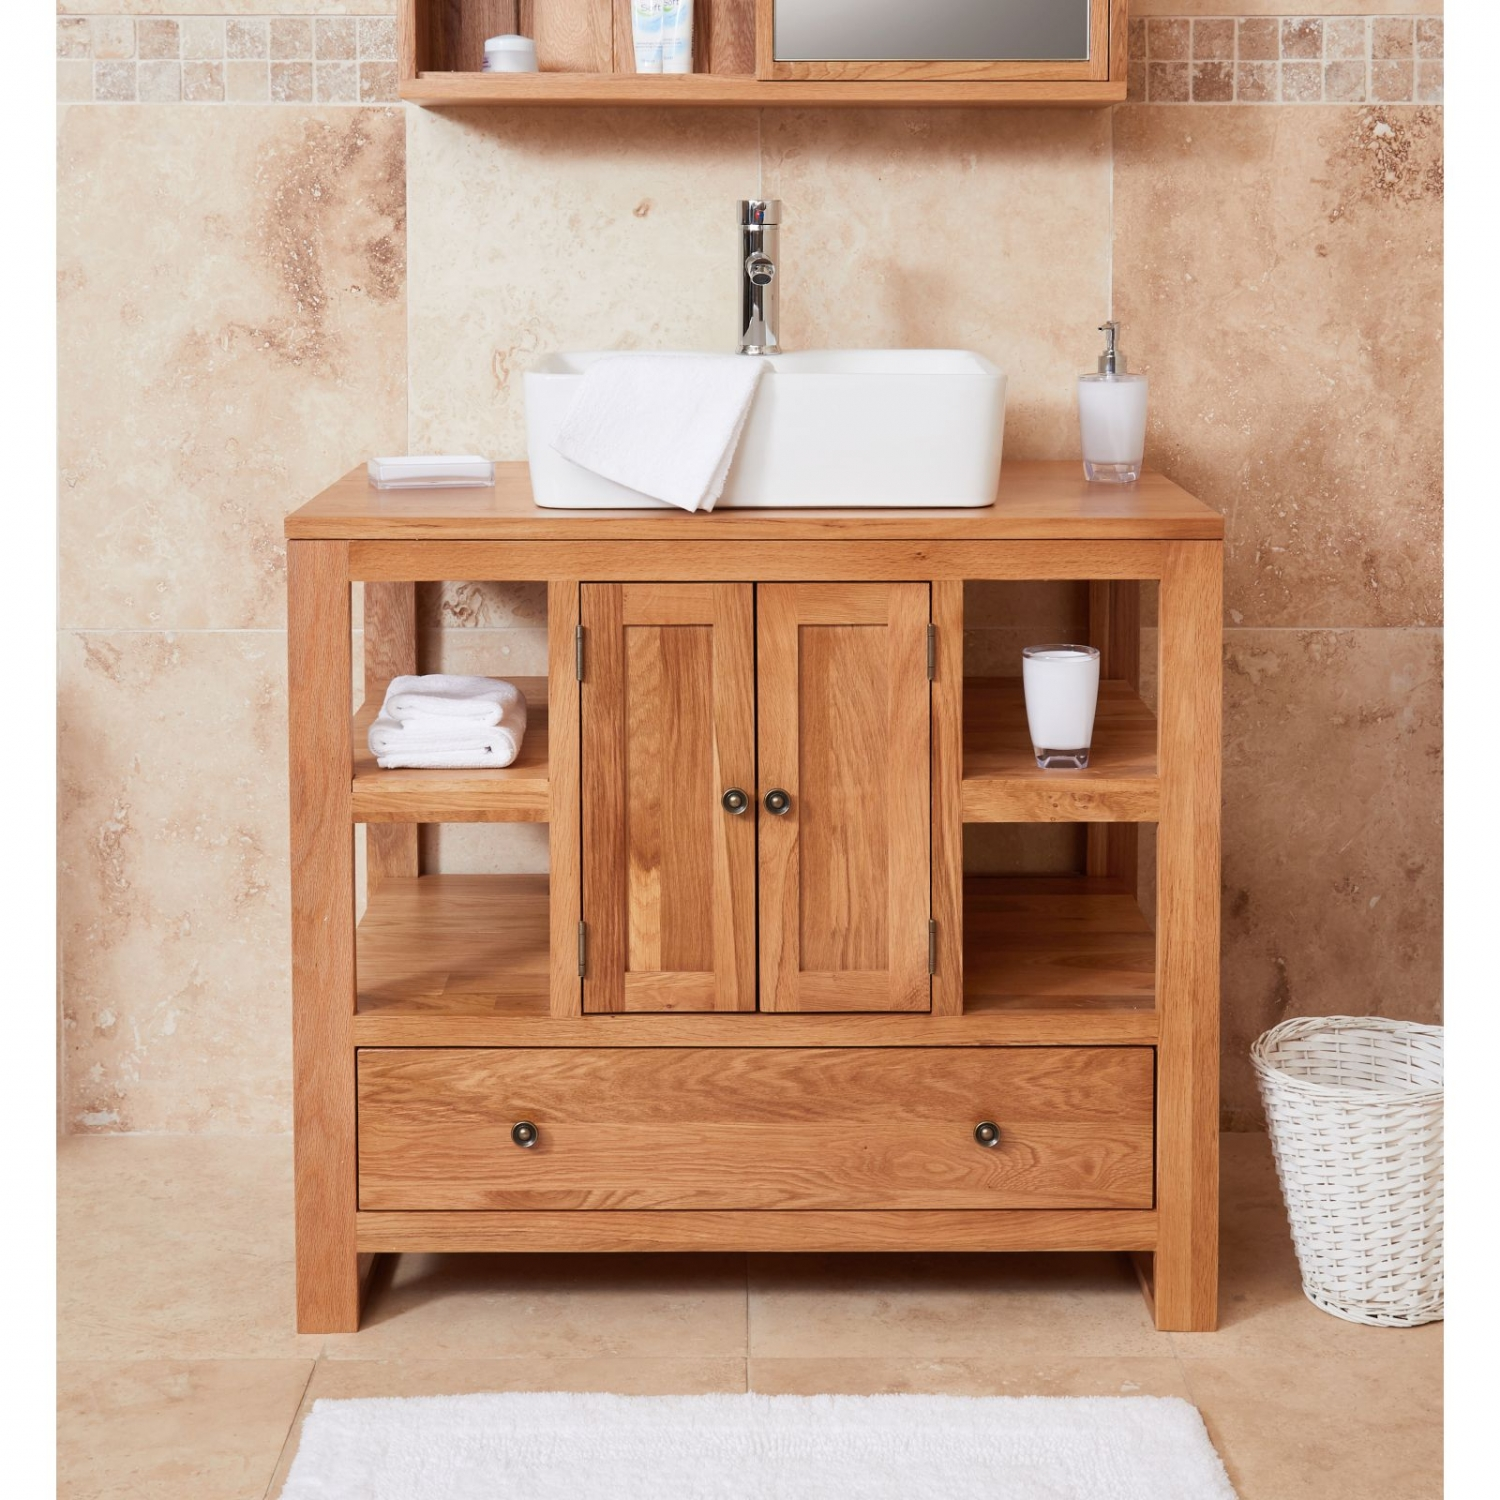 Solid Oak Bathroom Furniture Two Door